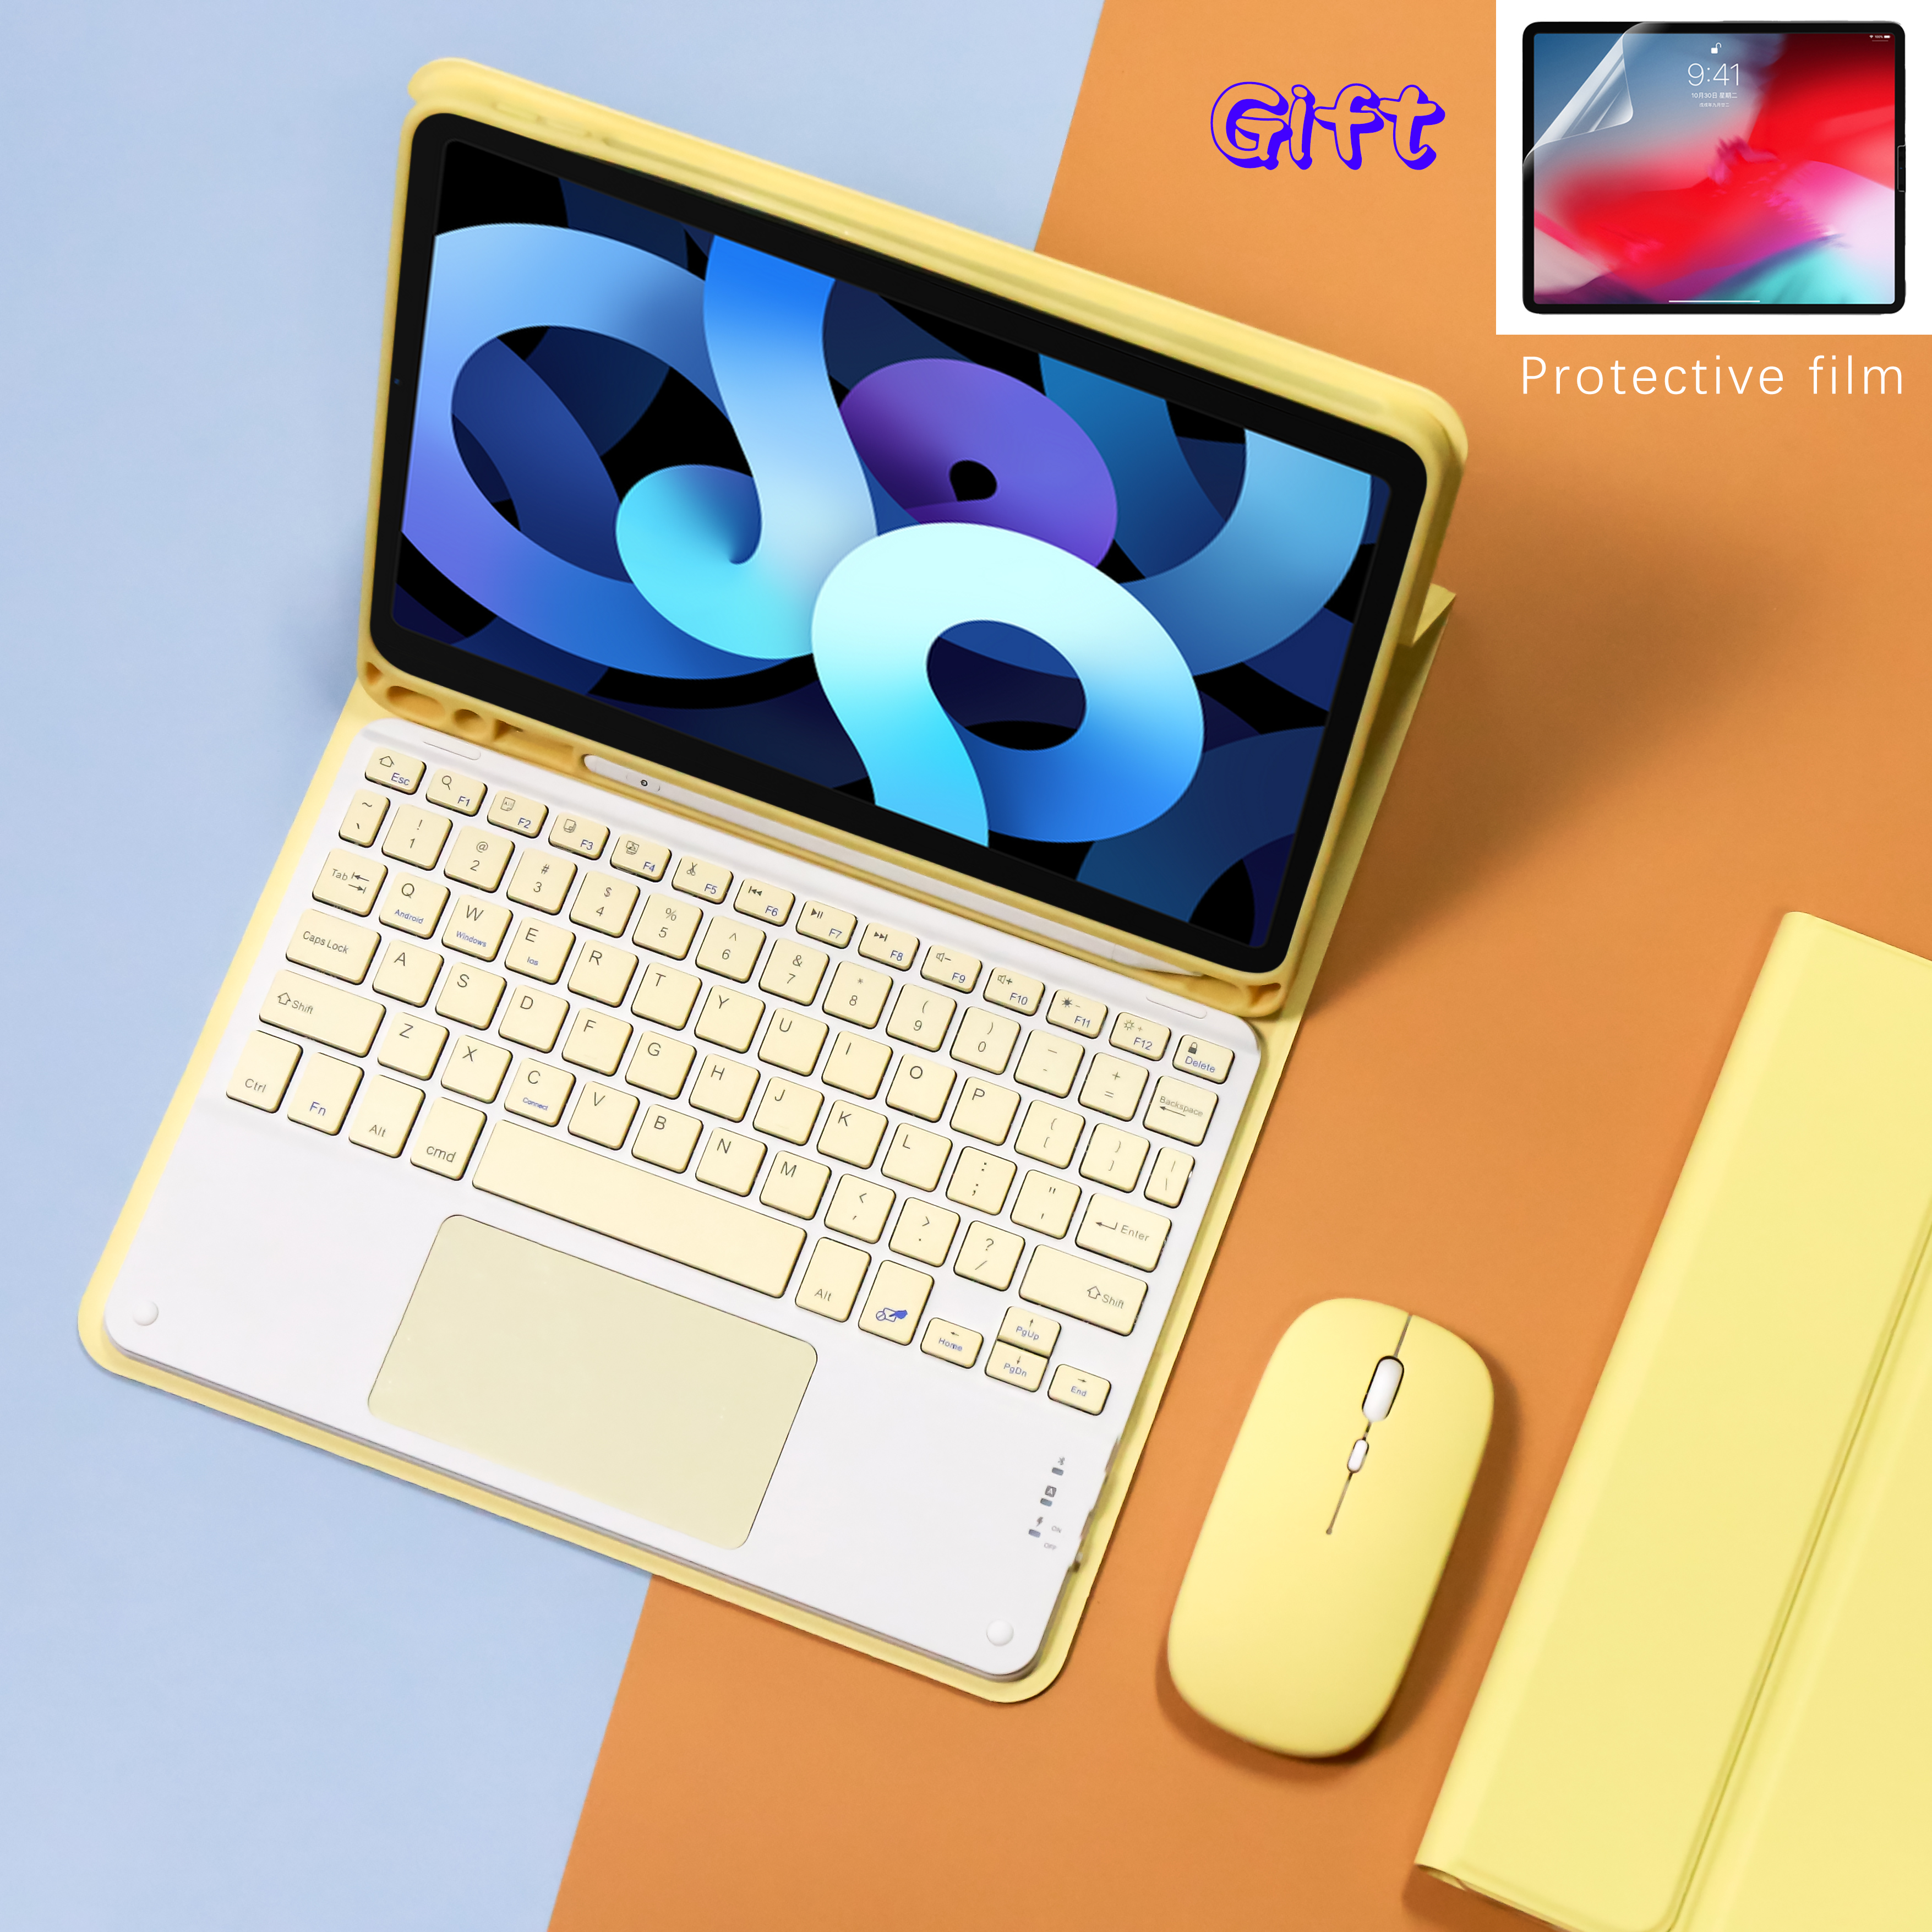 keyboard Wireless Mouse Magic For iPad Pro 11 Case 2021 2020 Air 4 10.2 7th 8th 5 6th Generation Air 3 Air 2 bluetooth keyboard